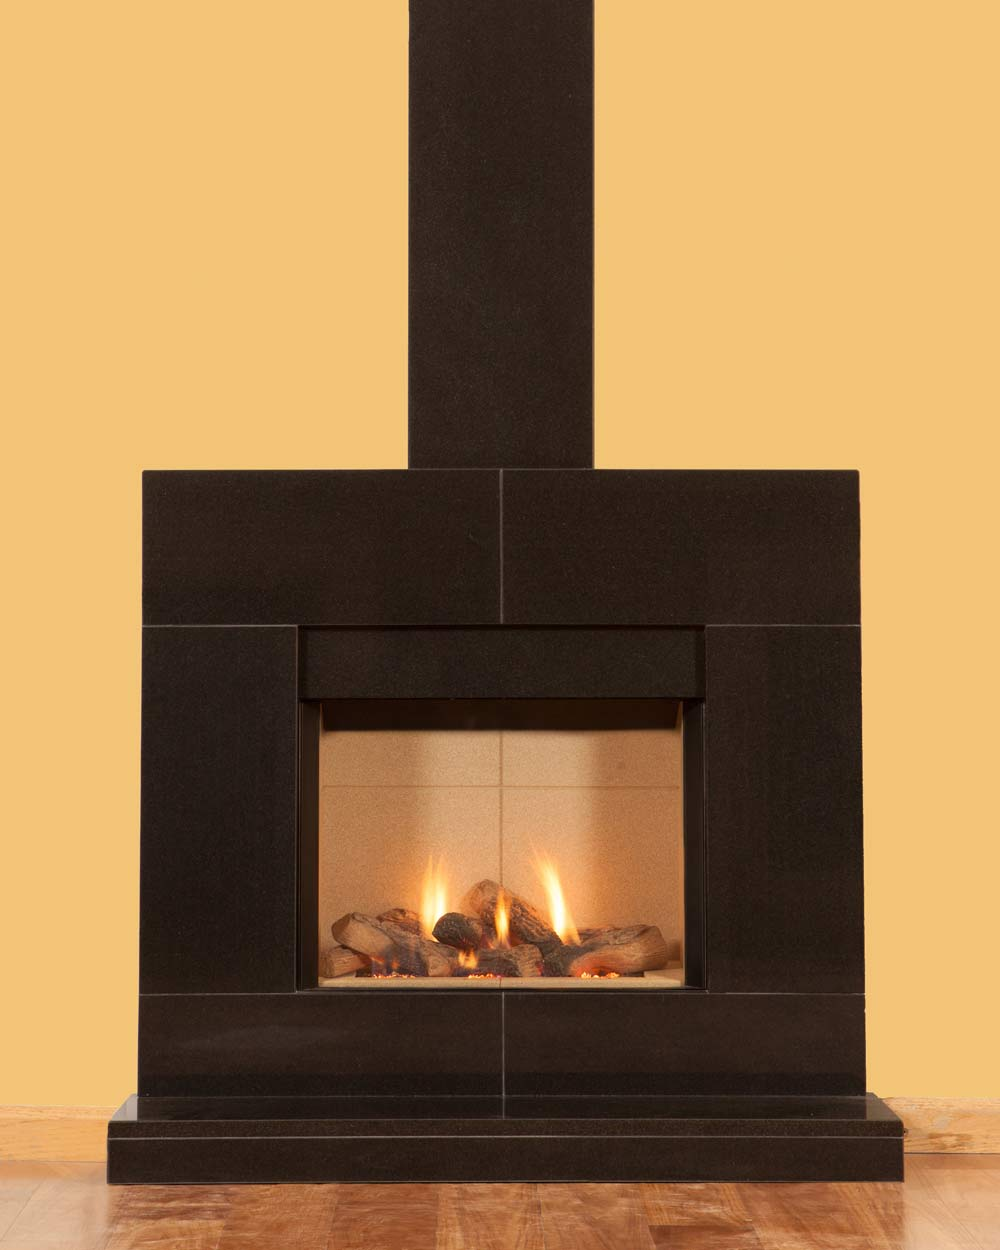 unique-design-iconic-fireplace-surround